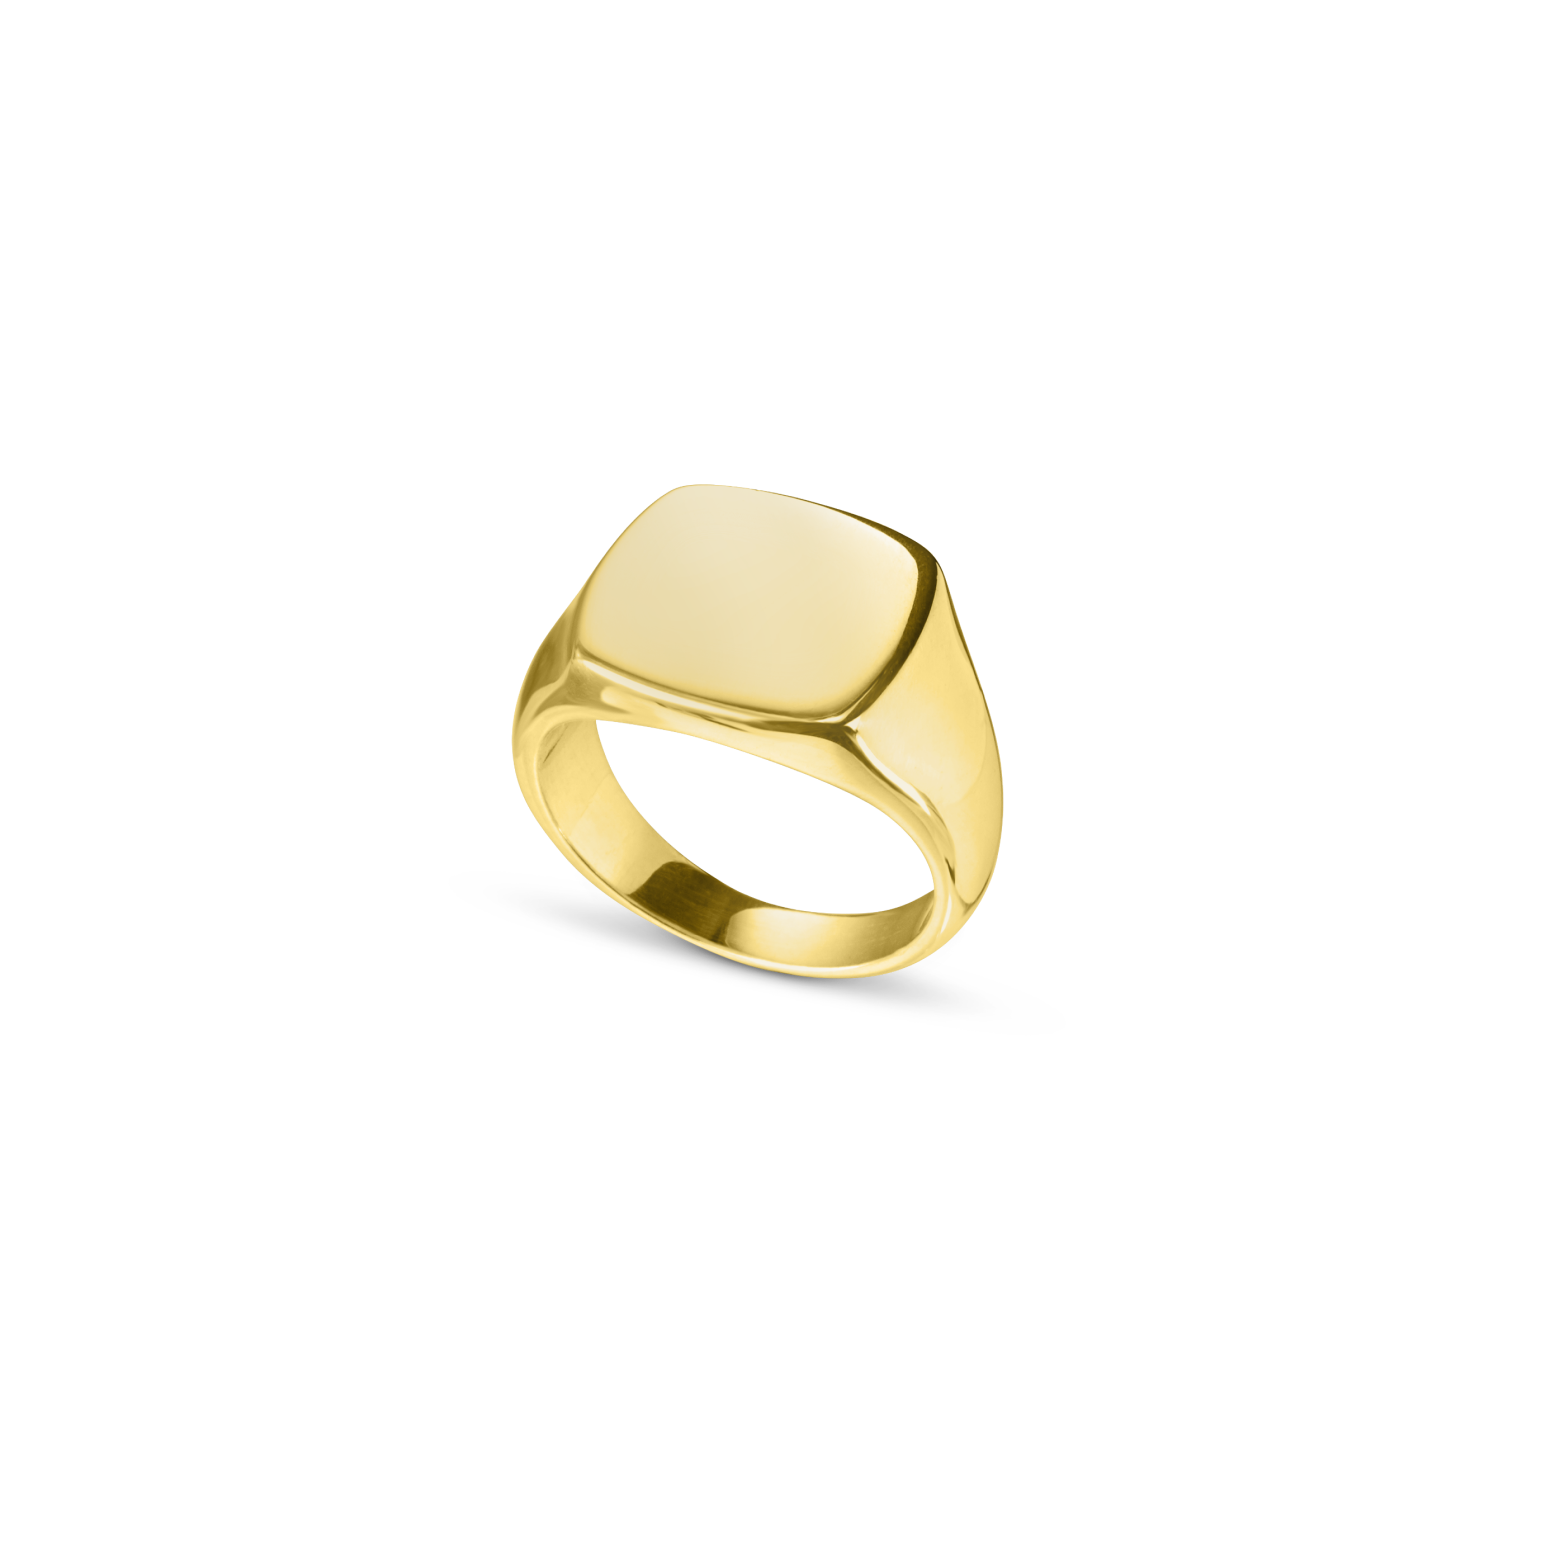 The Cushion Signet Ring